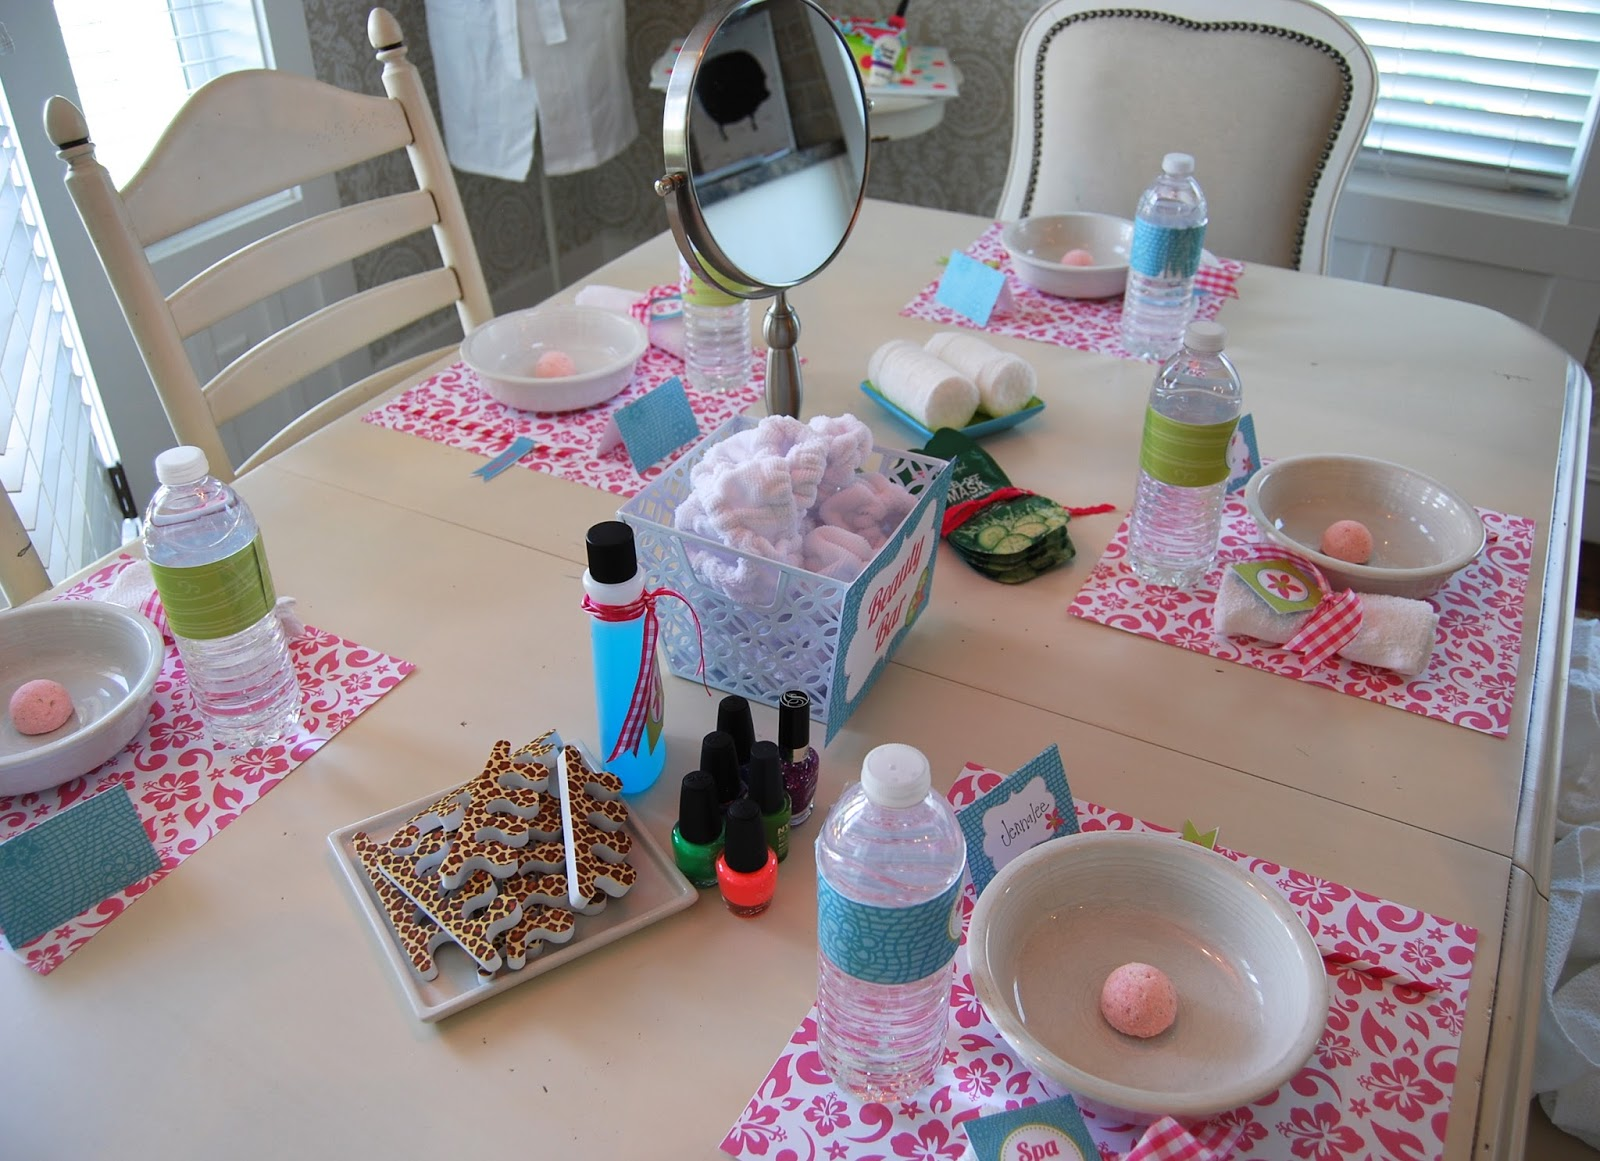 At Home Spa Party Ideas | Examples and Forms